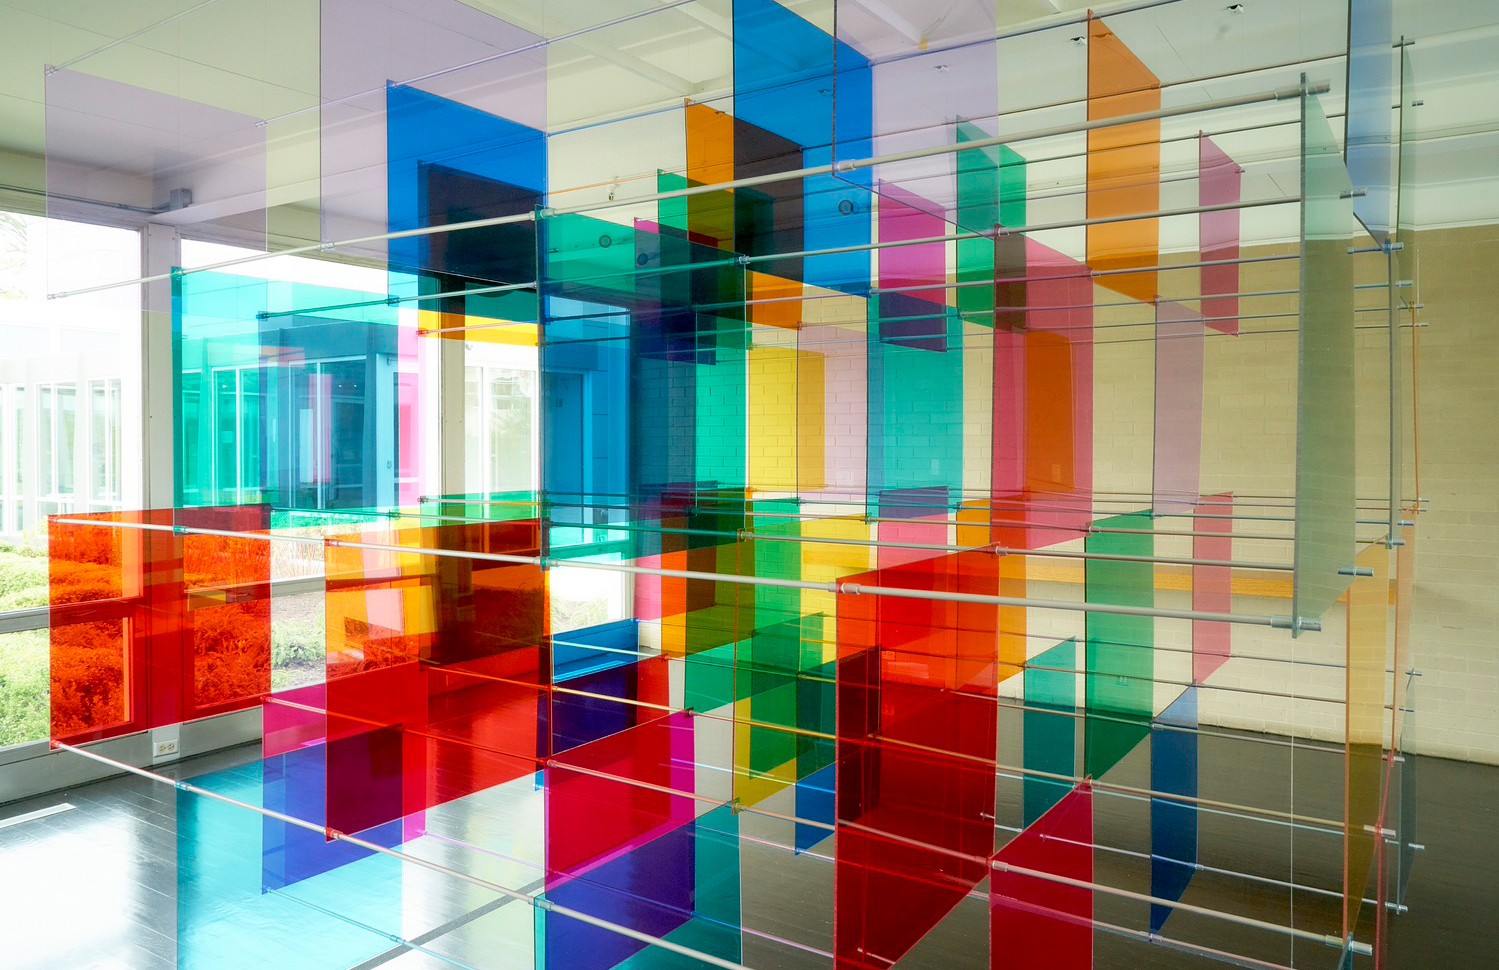 Art duo Luftwerk has installed a floating grid of colour inside Mies van der Rohe's McCormick House in Chicago.